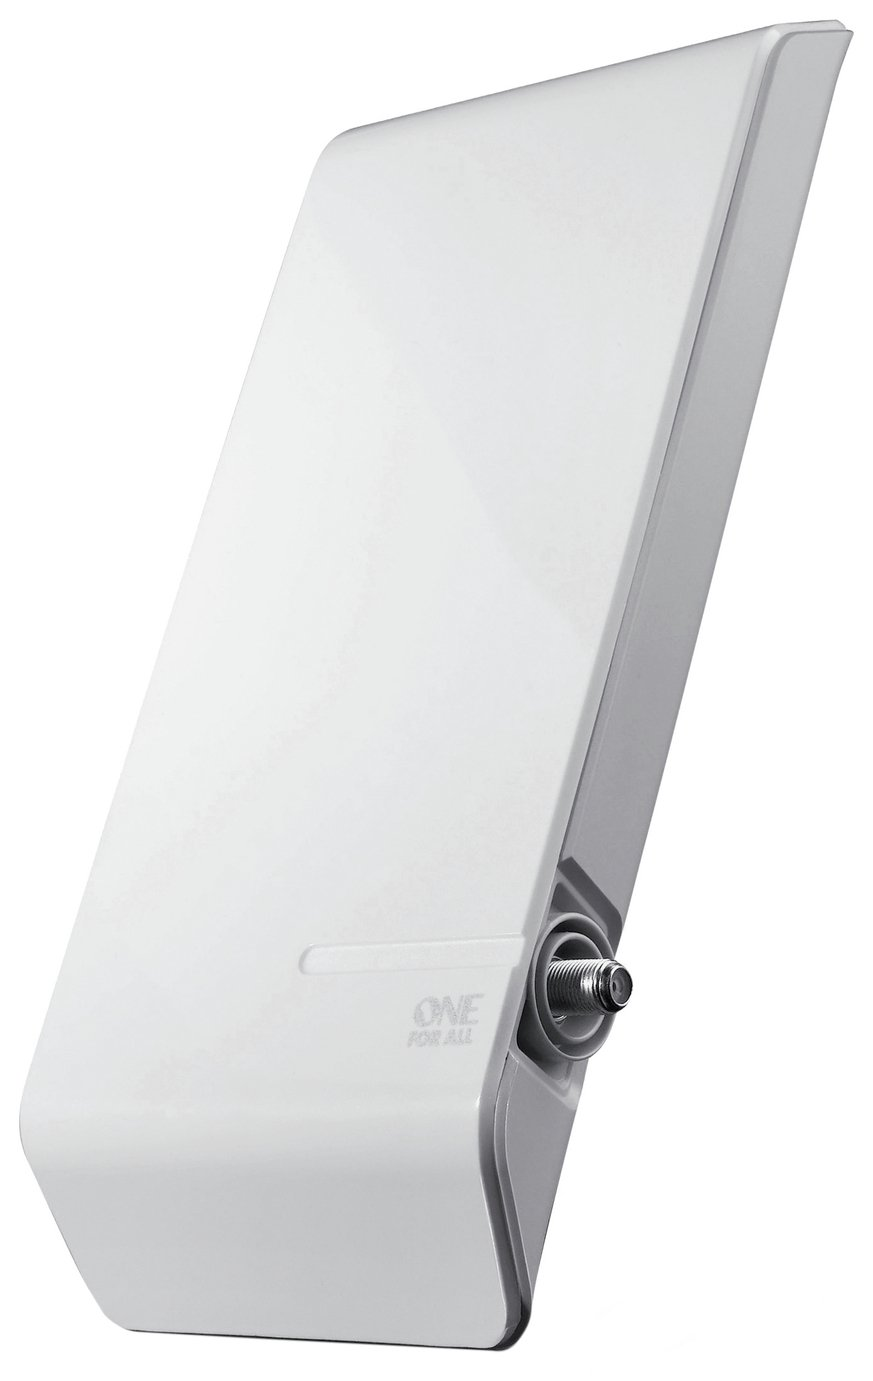 One For All SV9450 Amplified Outdoor TV Aerial